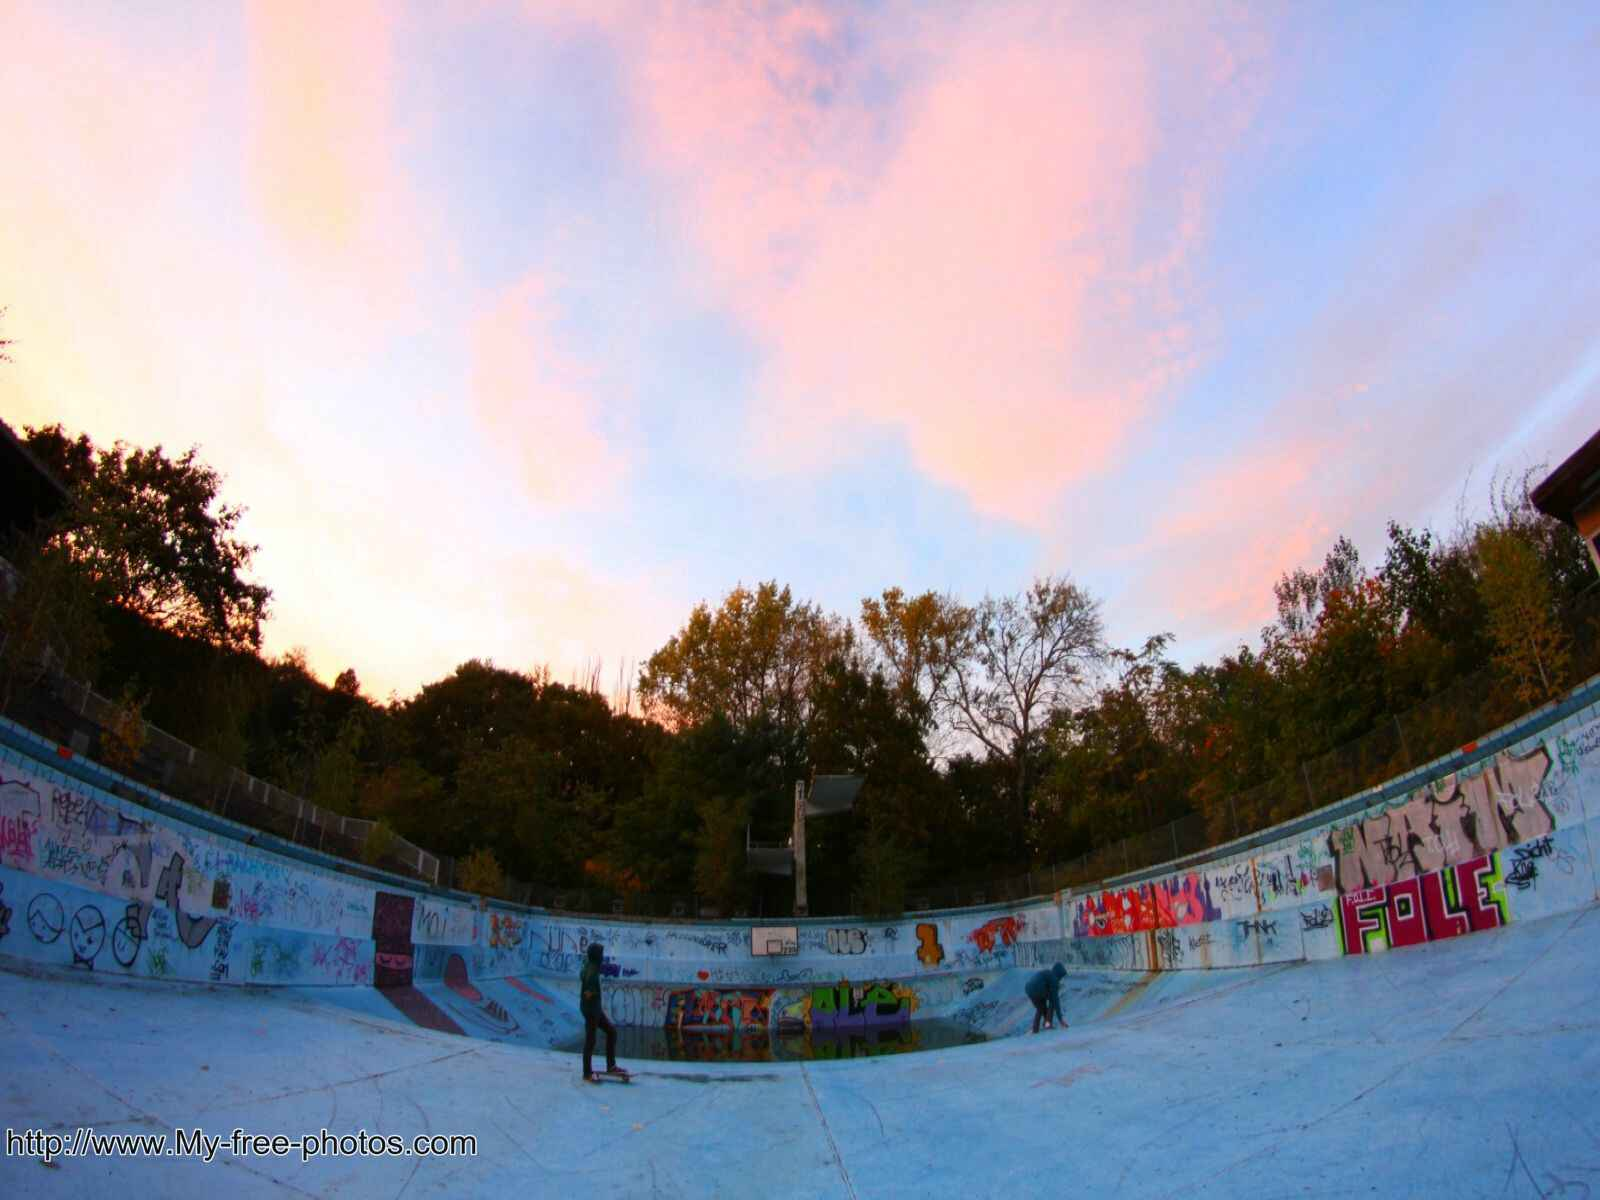 Skate park at sunset